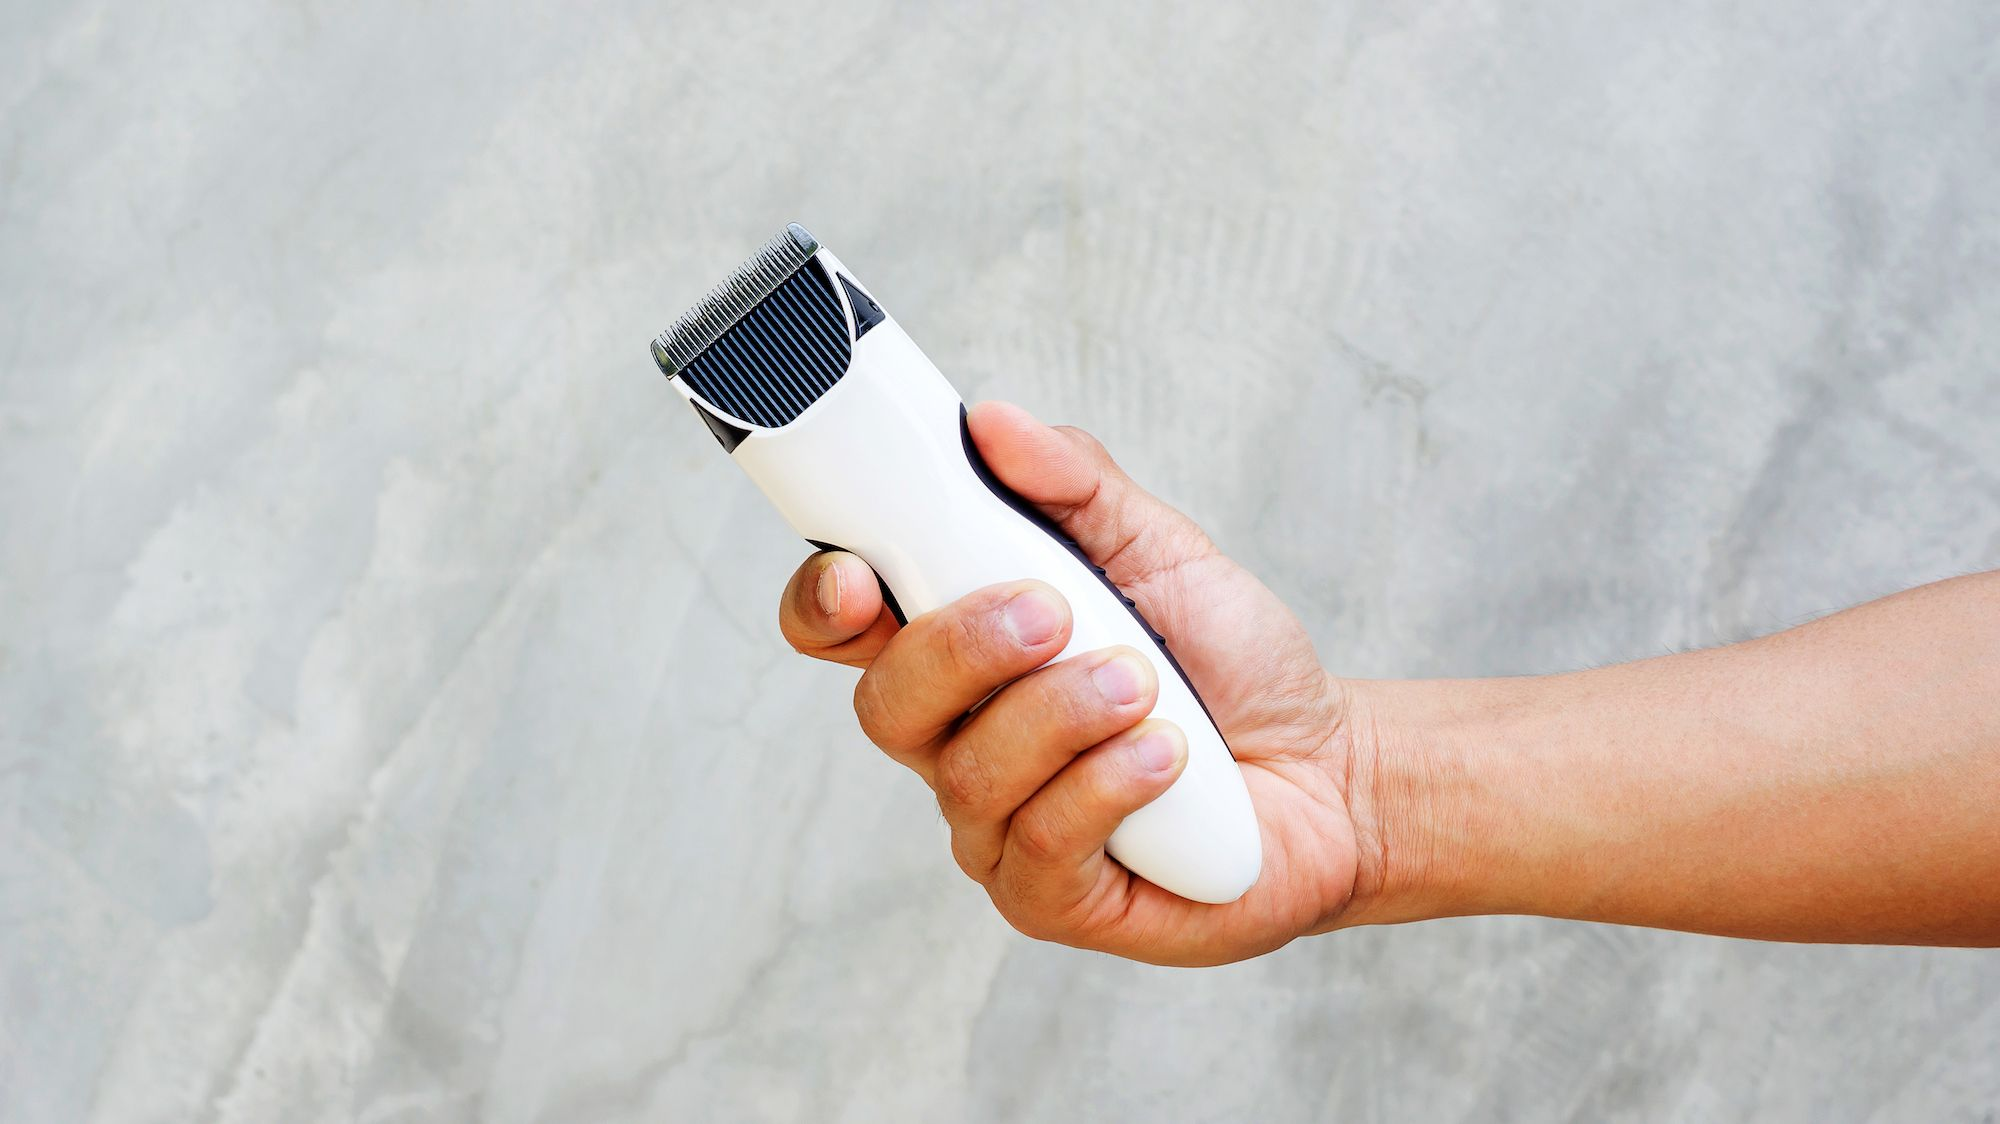 How To Cut Men's Hair At Home: Video Tutorials